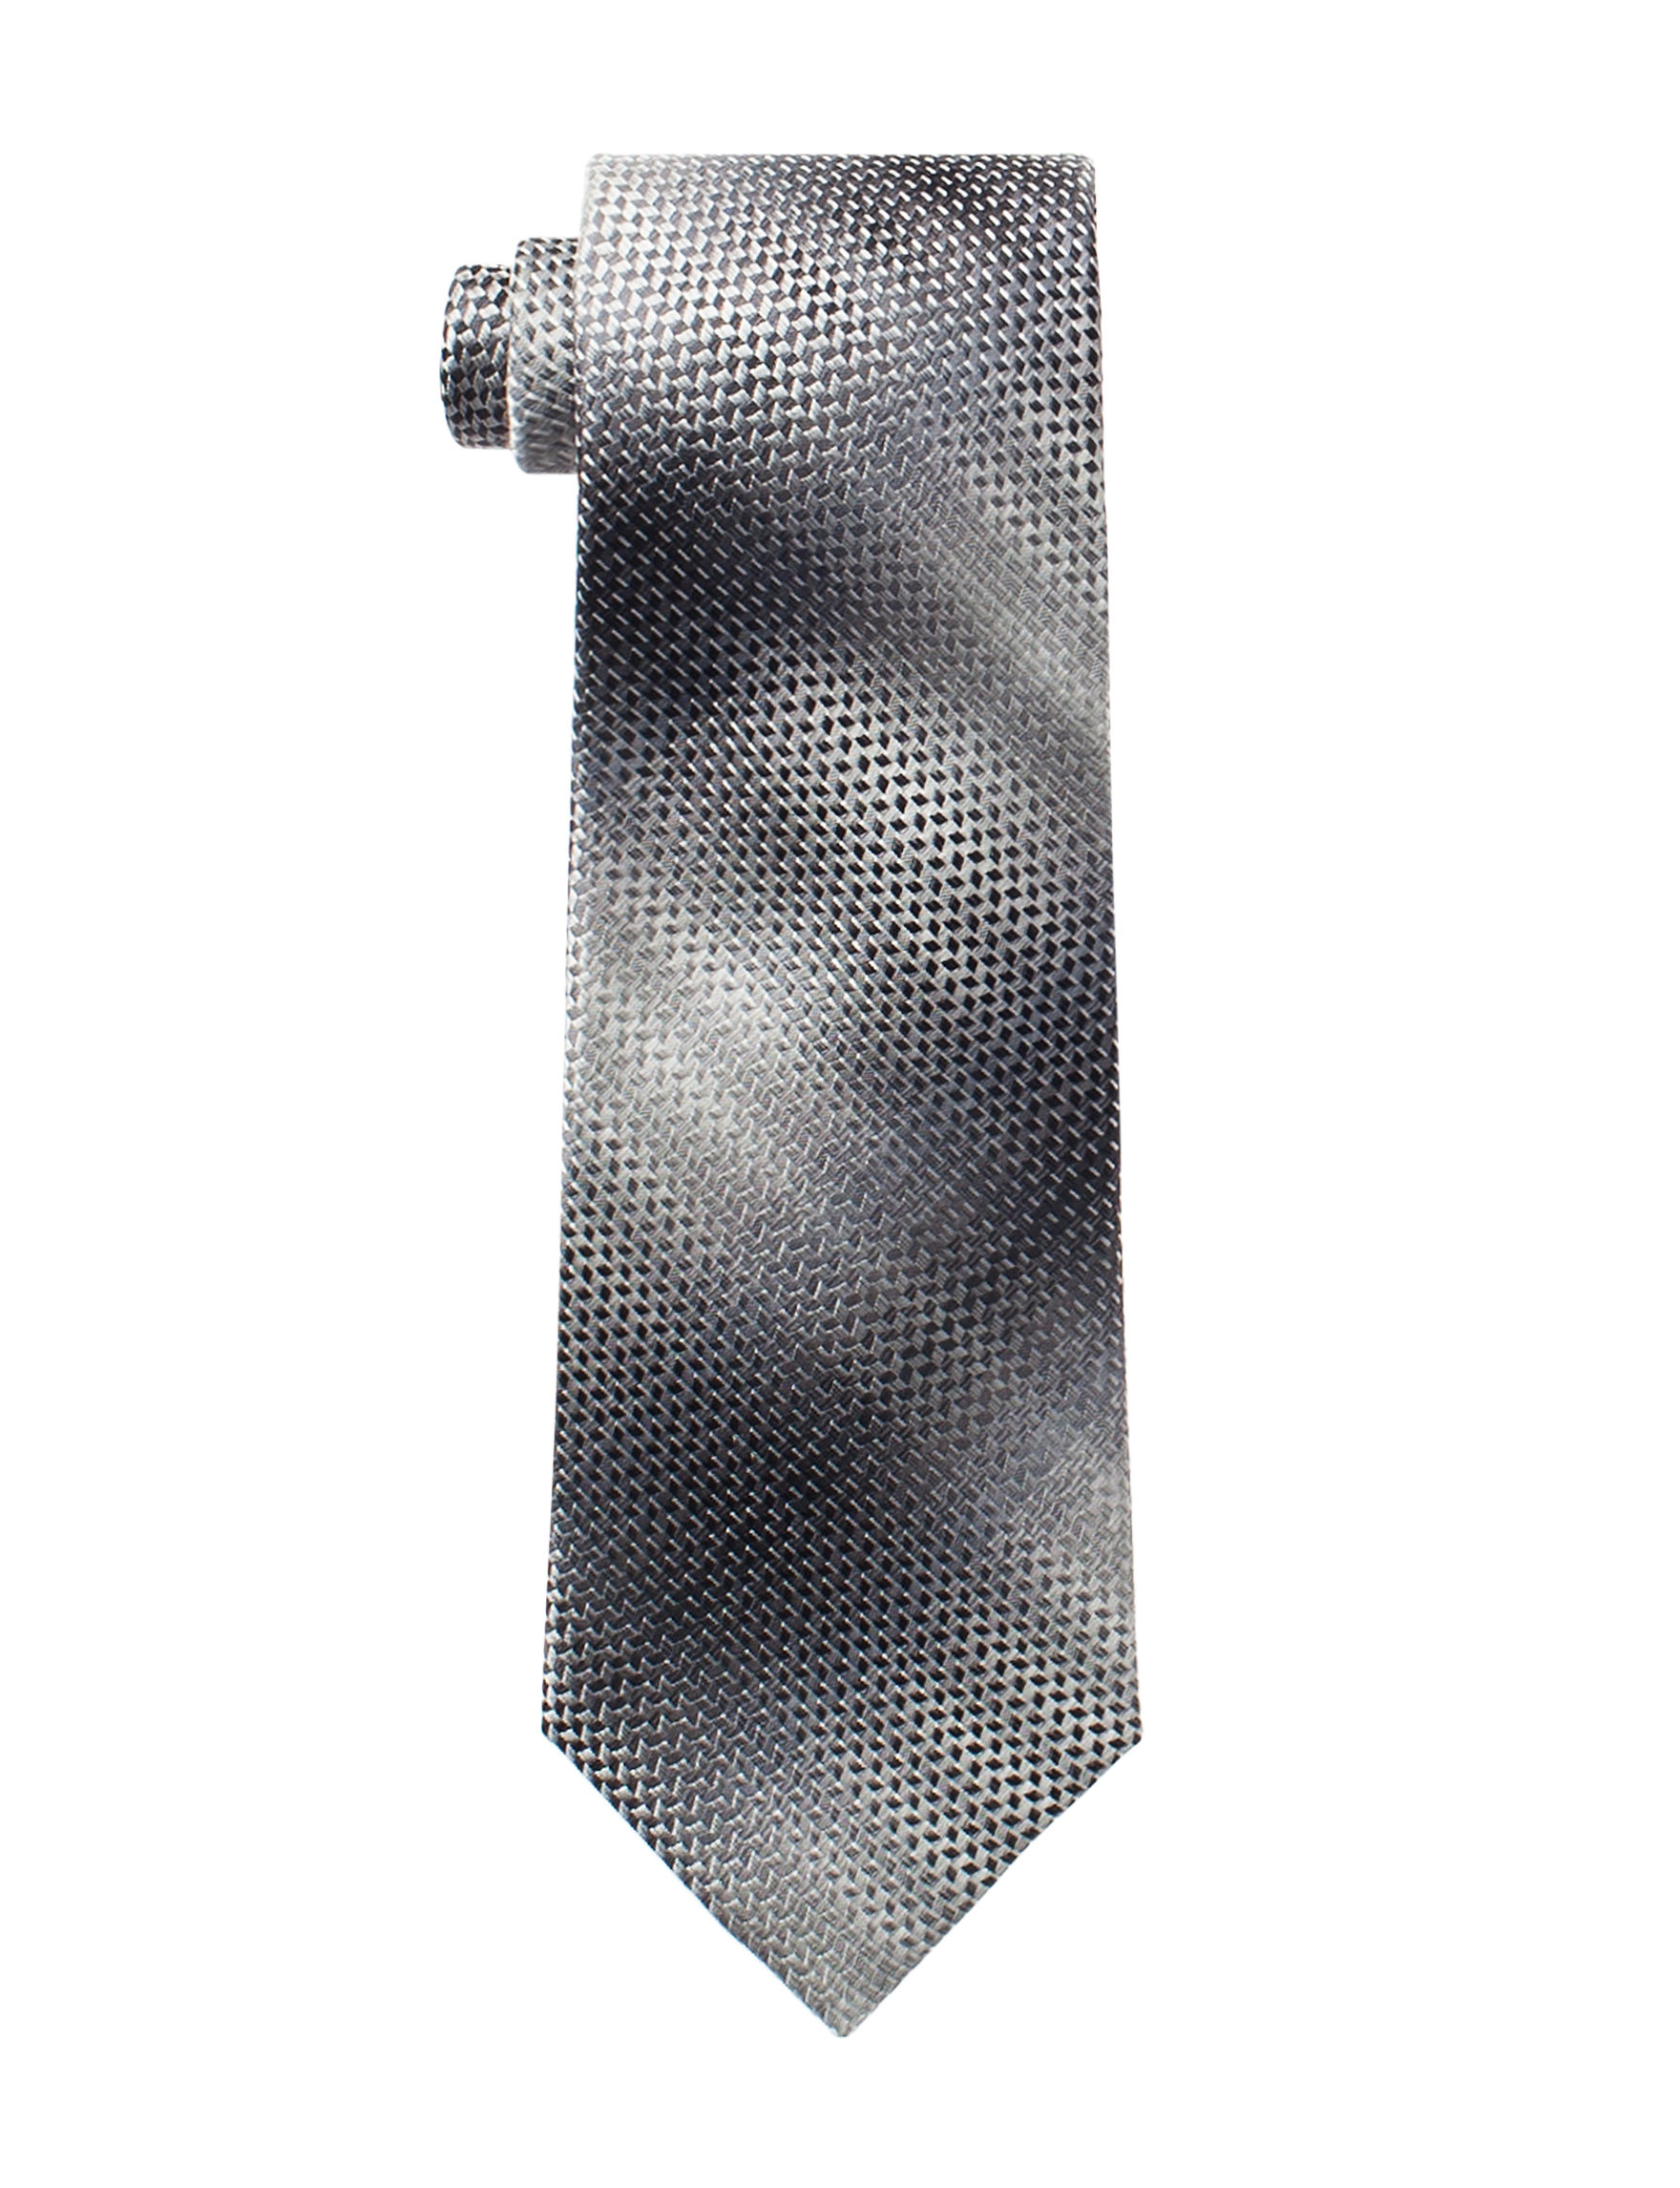 Van Heusen Black / Grey